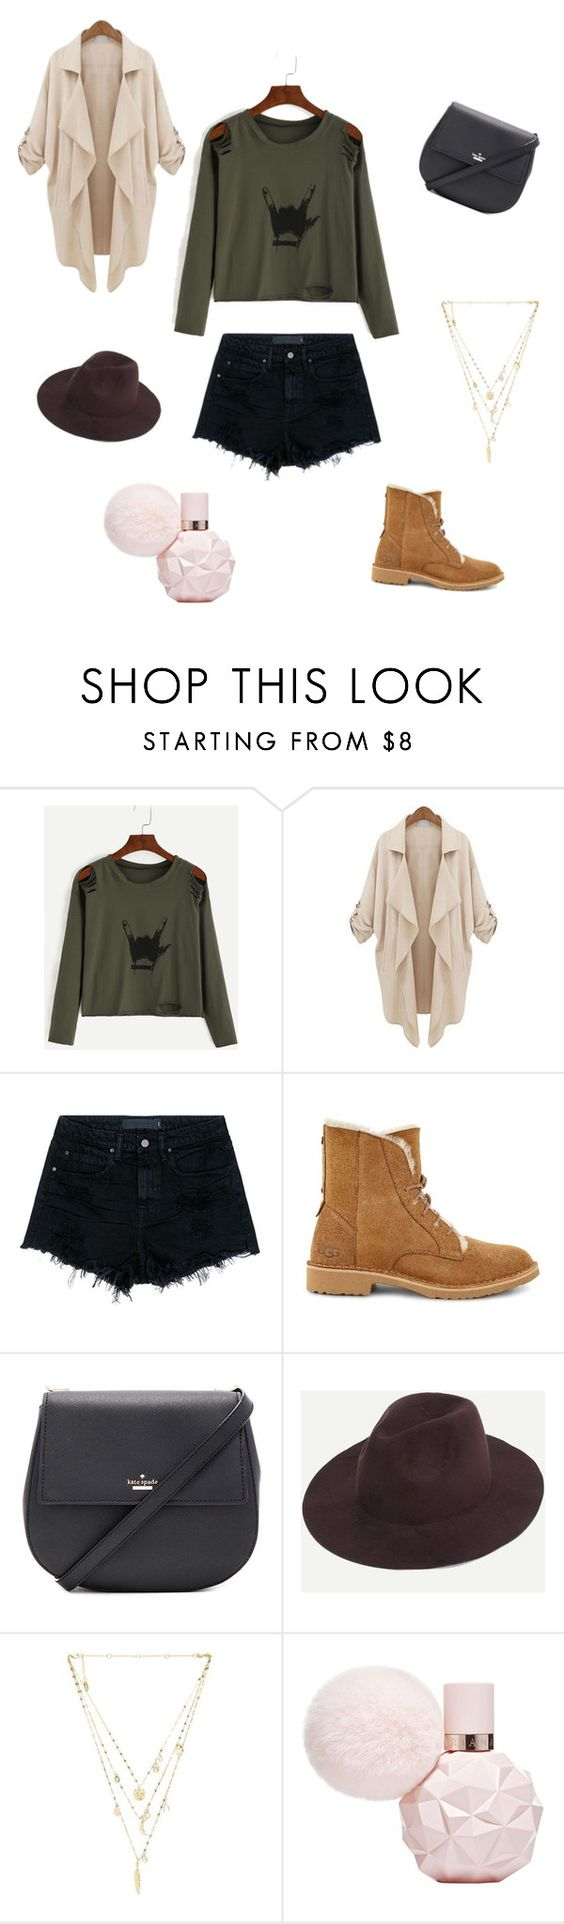 """""""Untitled #15"""" by torie-richards ❤ liked on Polyvore featuring Alexander Wang, UGG, Kate Spade and Ettika"""